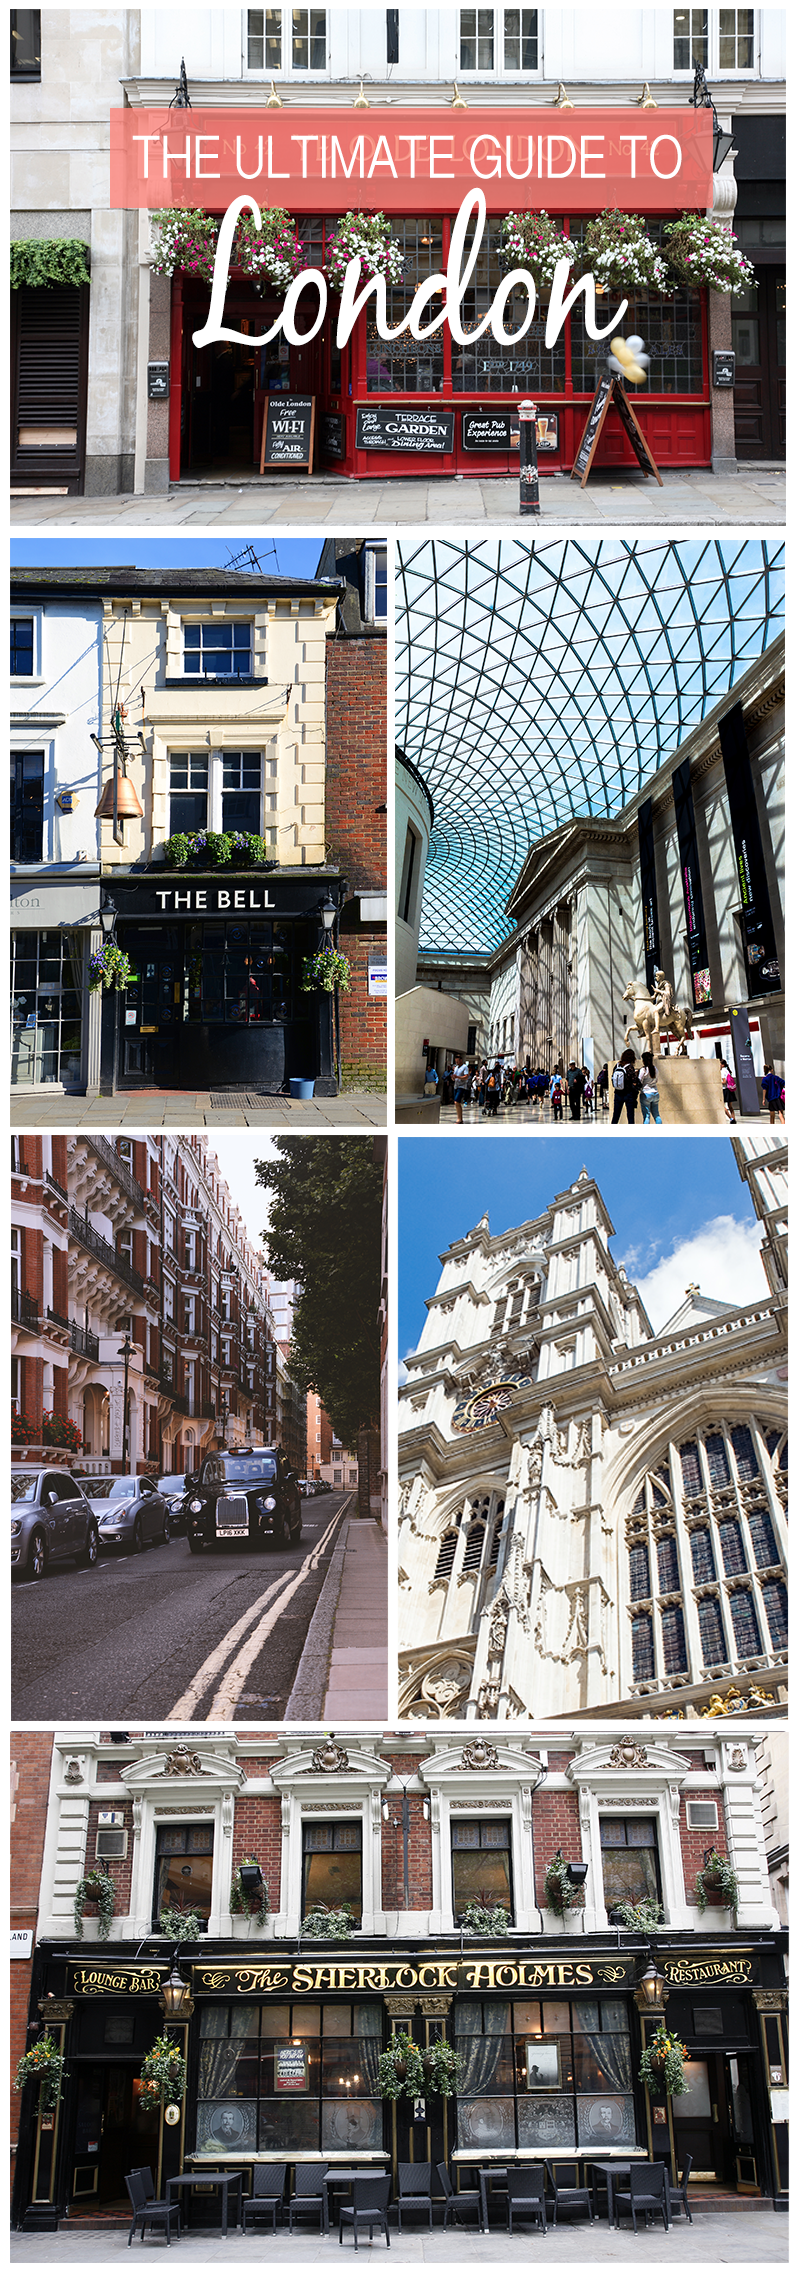 Plan on crossing the pond any time soon? Looking forward to trying a few rare eats? Wondering where to pick up some Fish & Chips like Alexa Chung? We've collected our top picks for places to visit in London, England as part of our See & Savor series - Now live @ DD.